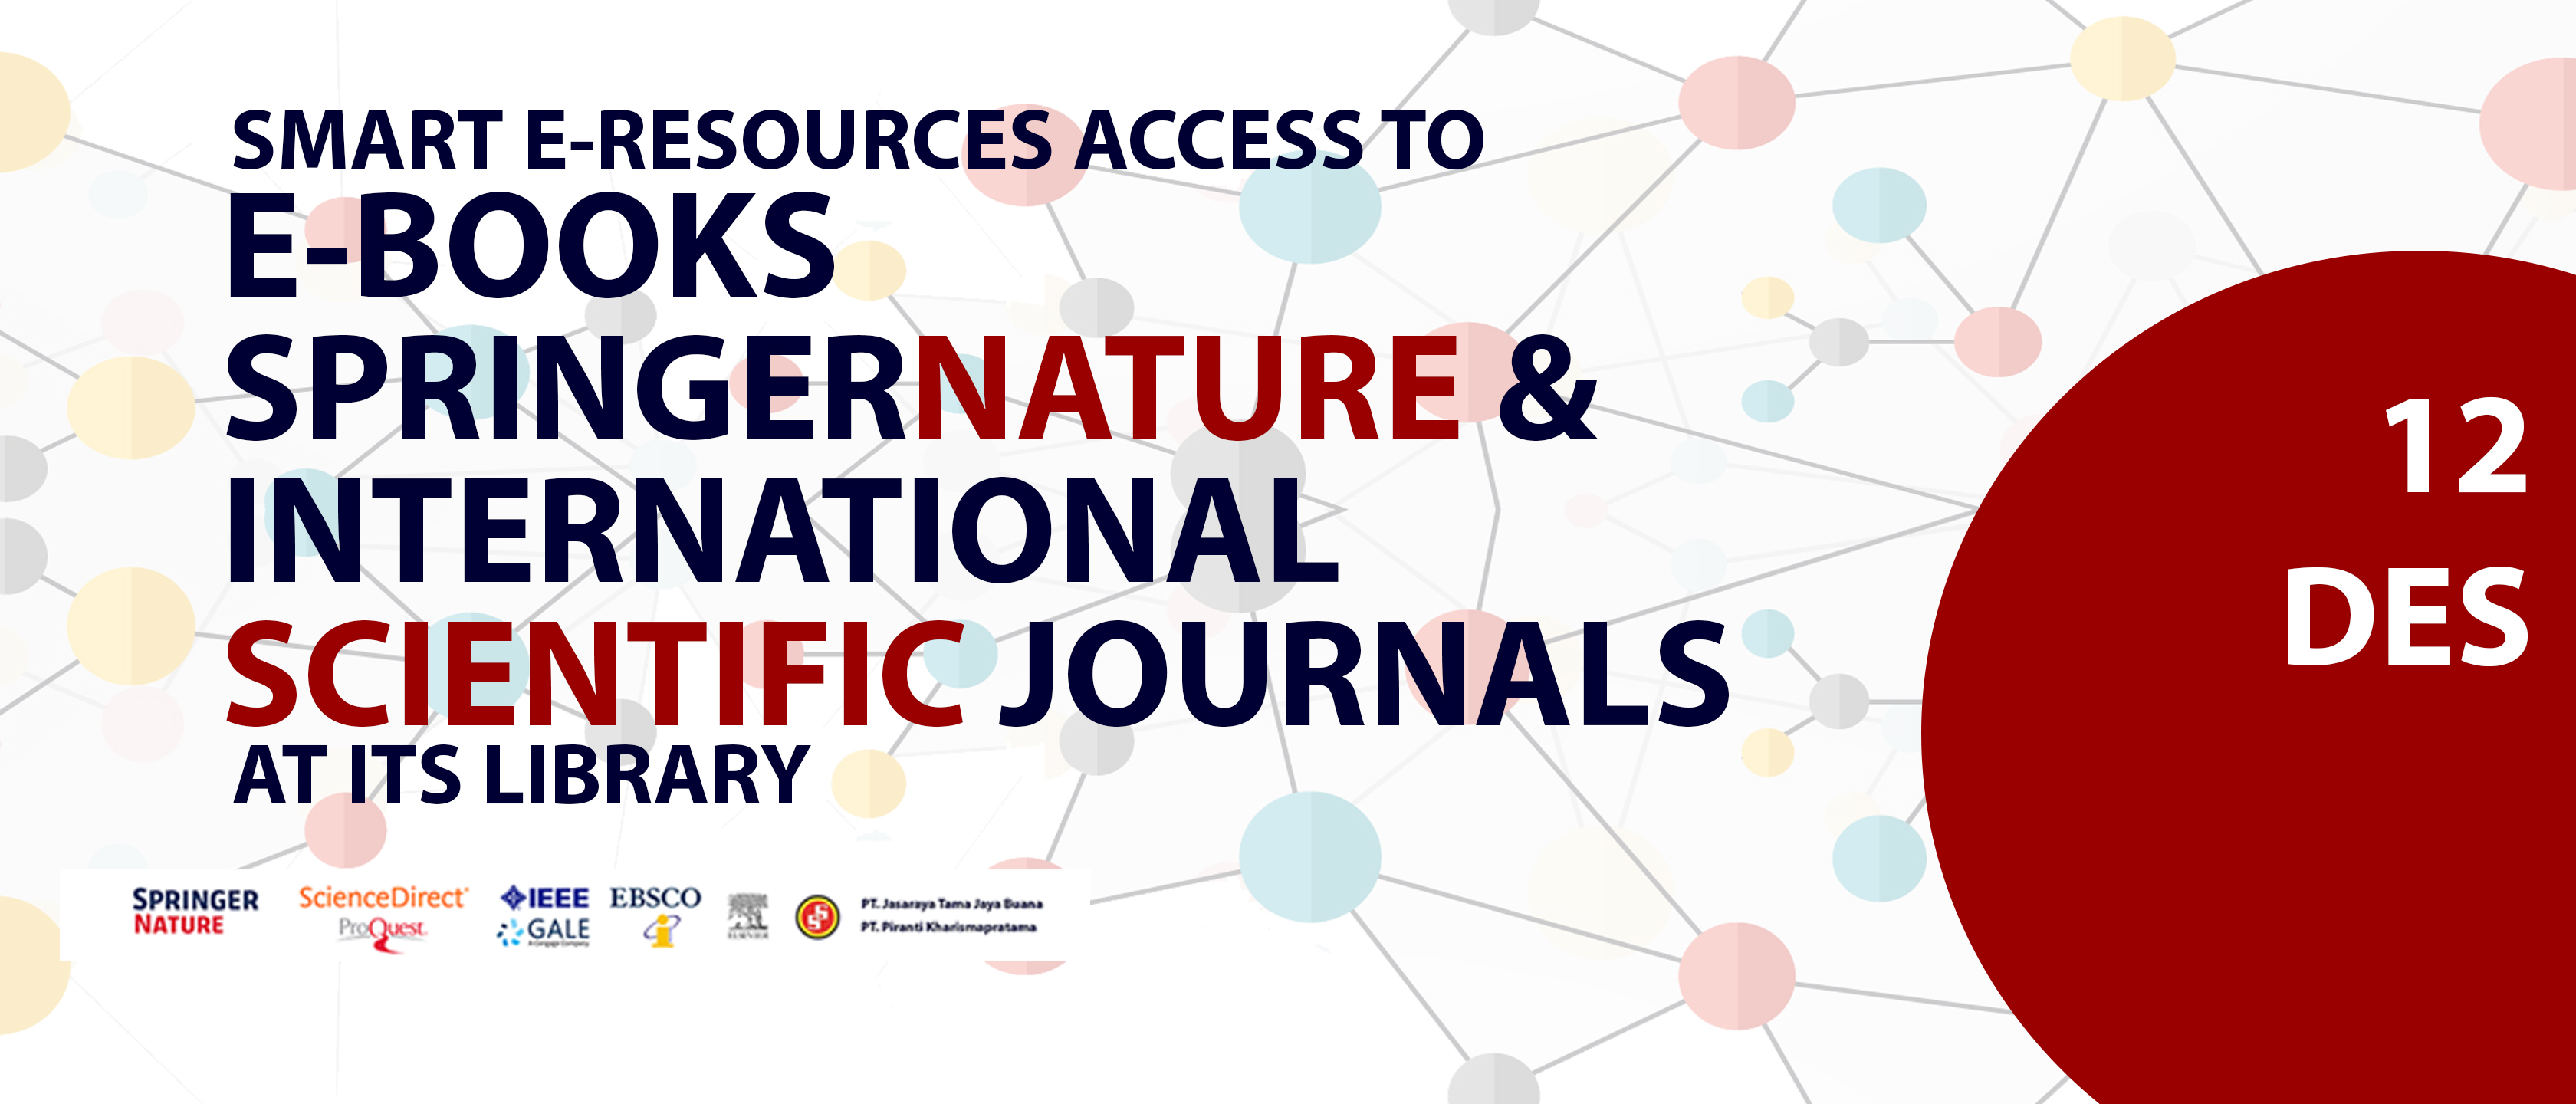 Smart Eresources Access to Ebook Springernature & International Scientific Journals at ITS Library